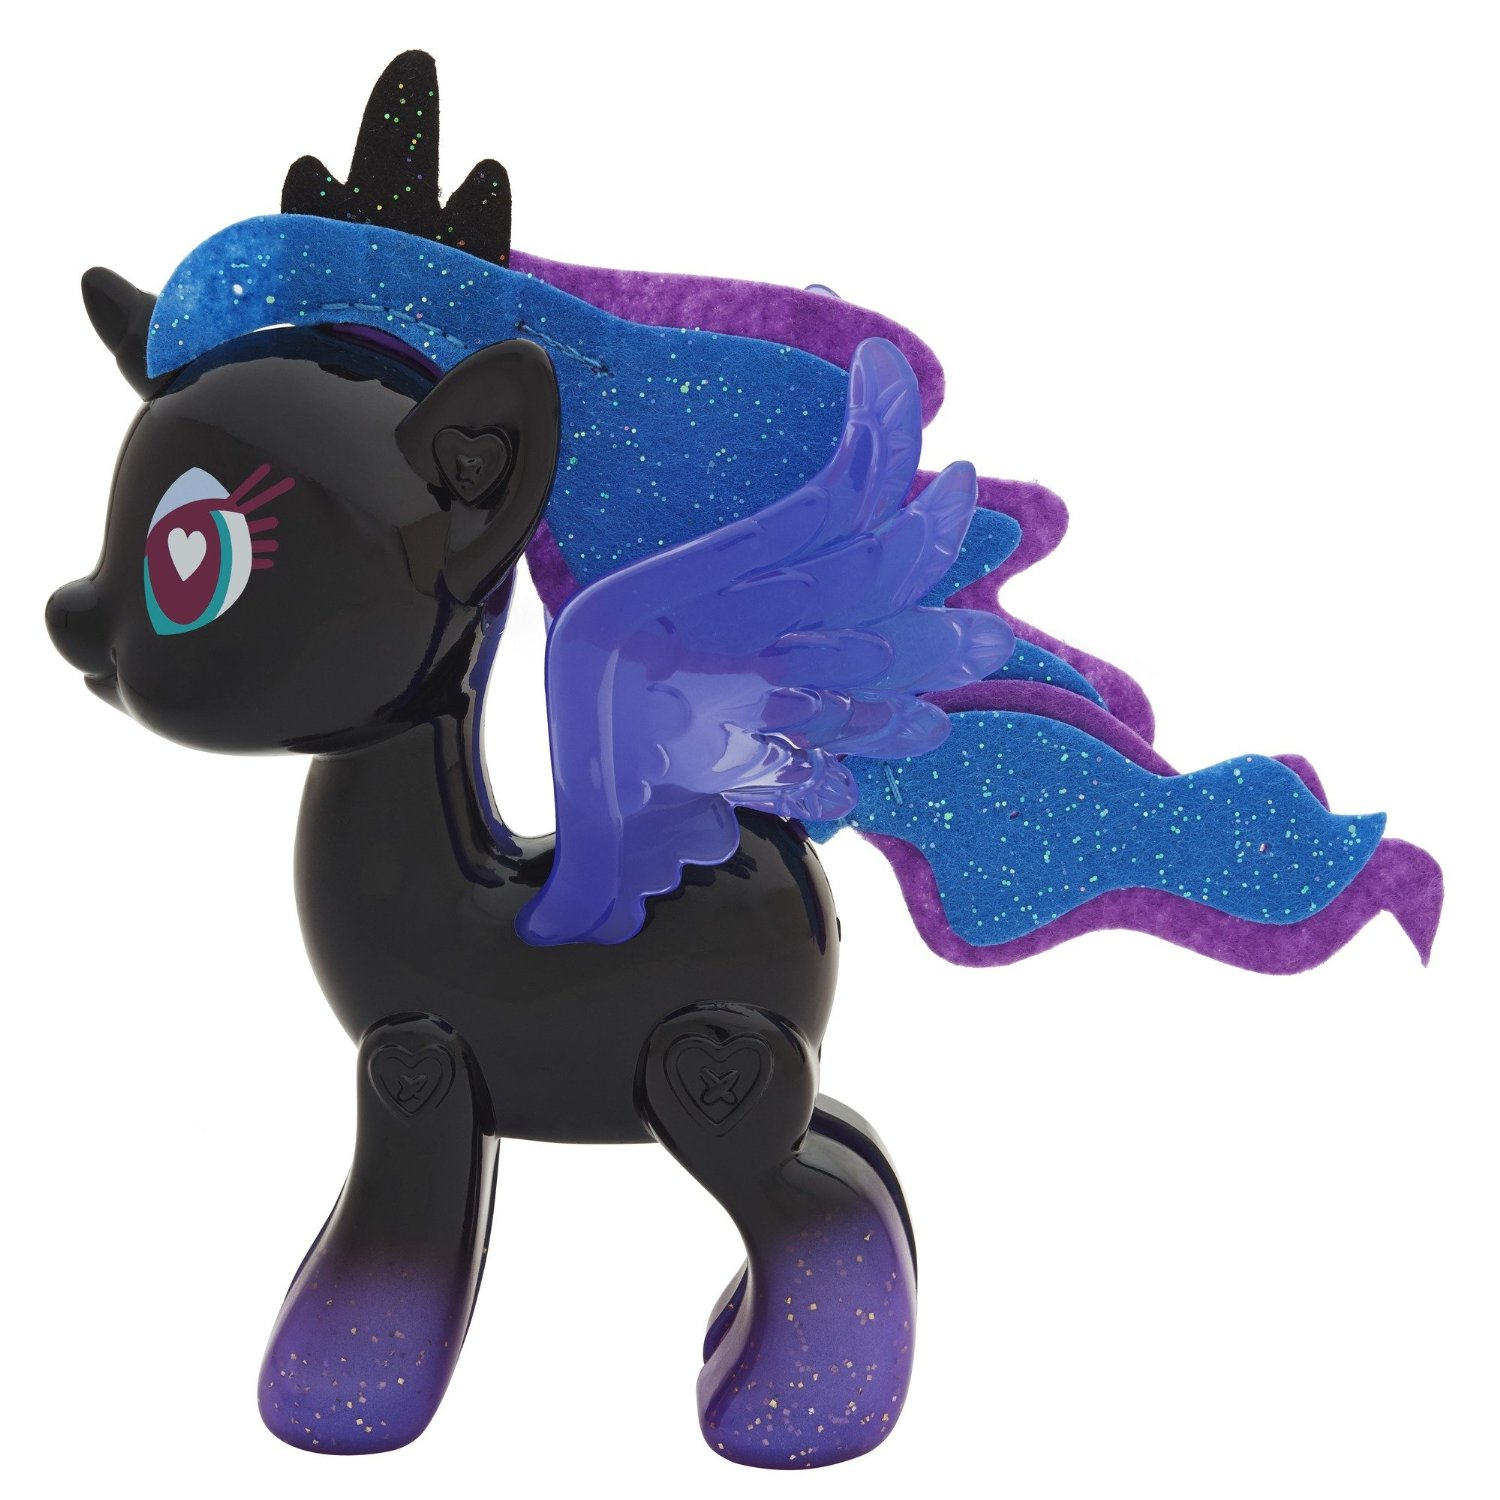 New hasbro pop ponies listed on amazon design a pony and wing kits mlp merch - Princesse poney ...